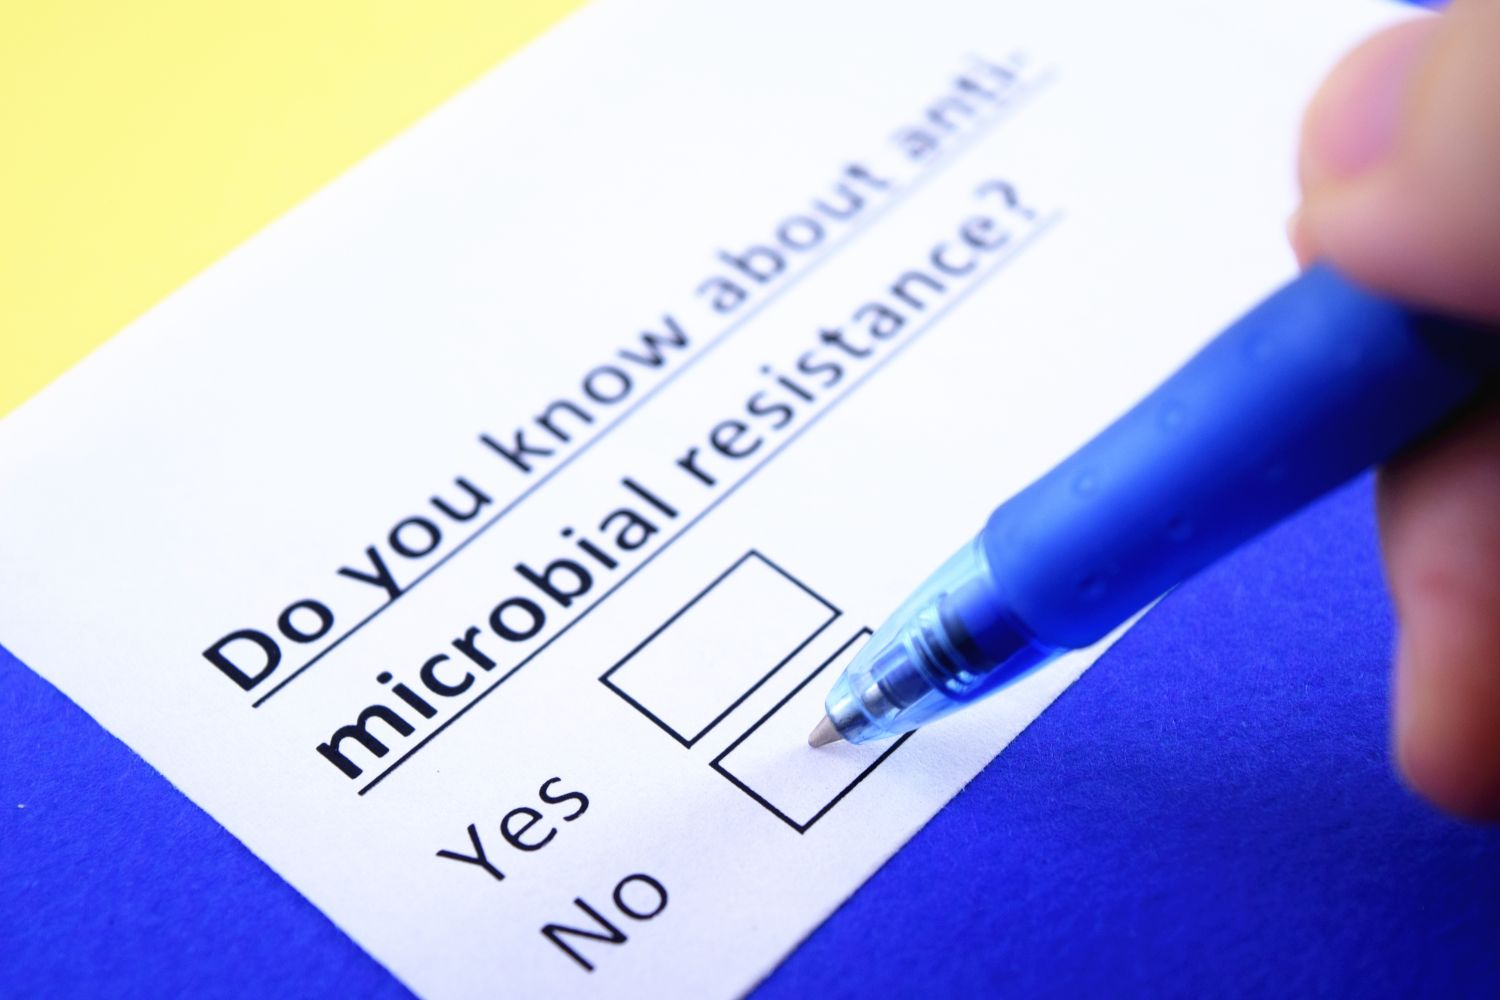 Why antimicrobial resistance matters in aged care